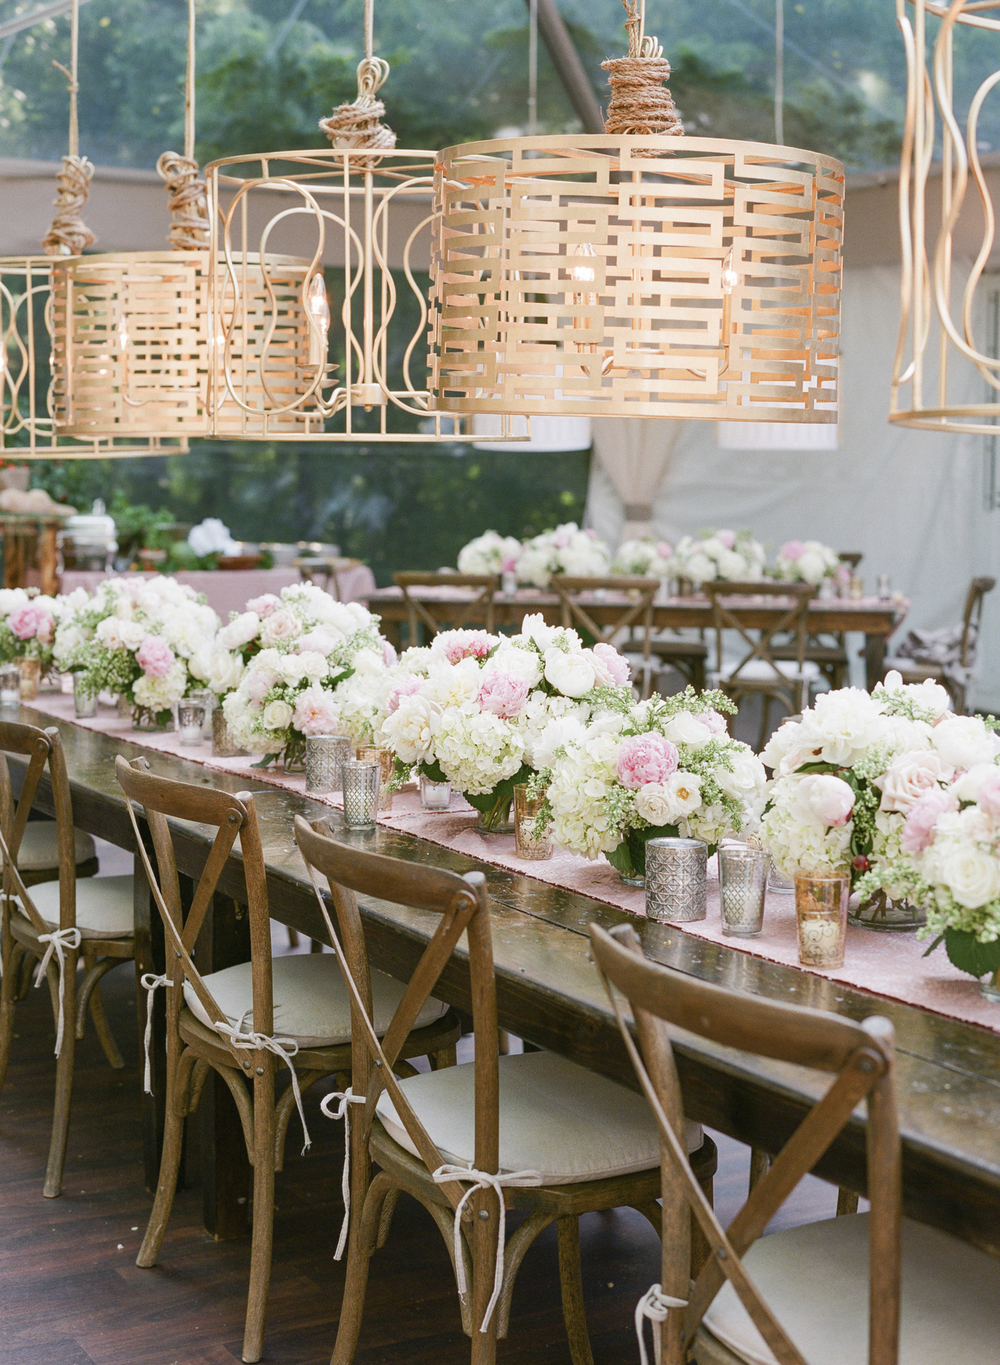 south_carolina_farm_wedding_rustic_chic_surprise_secret_luxe_wedding_bachelorette_emily_maynard_real_weddings-3.jpg